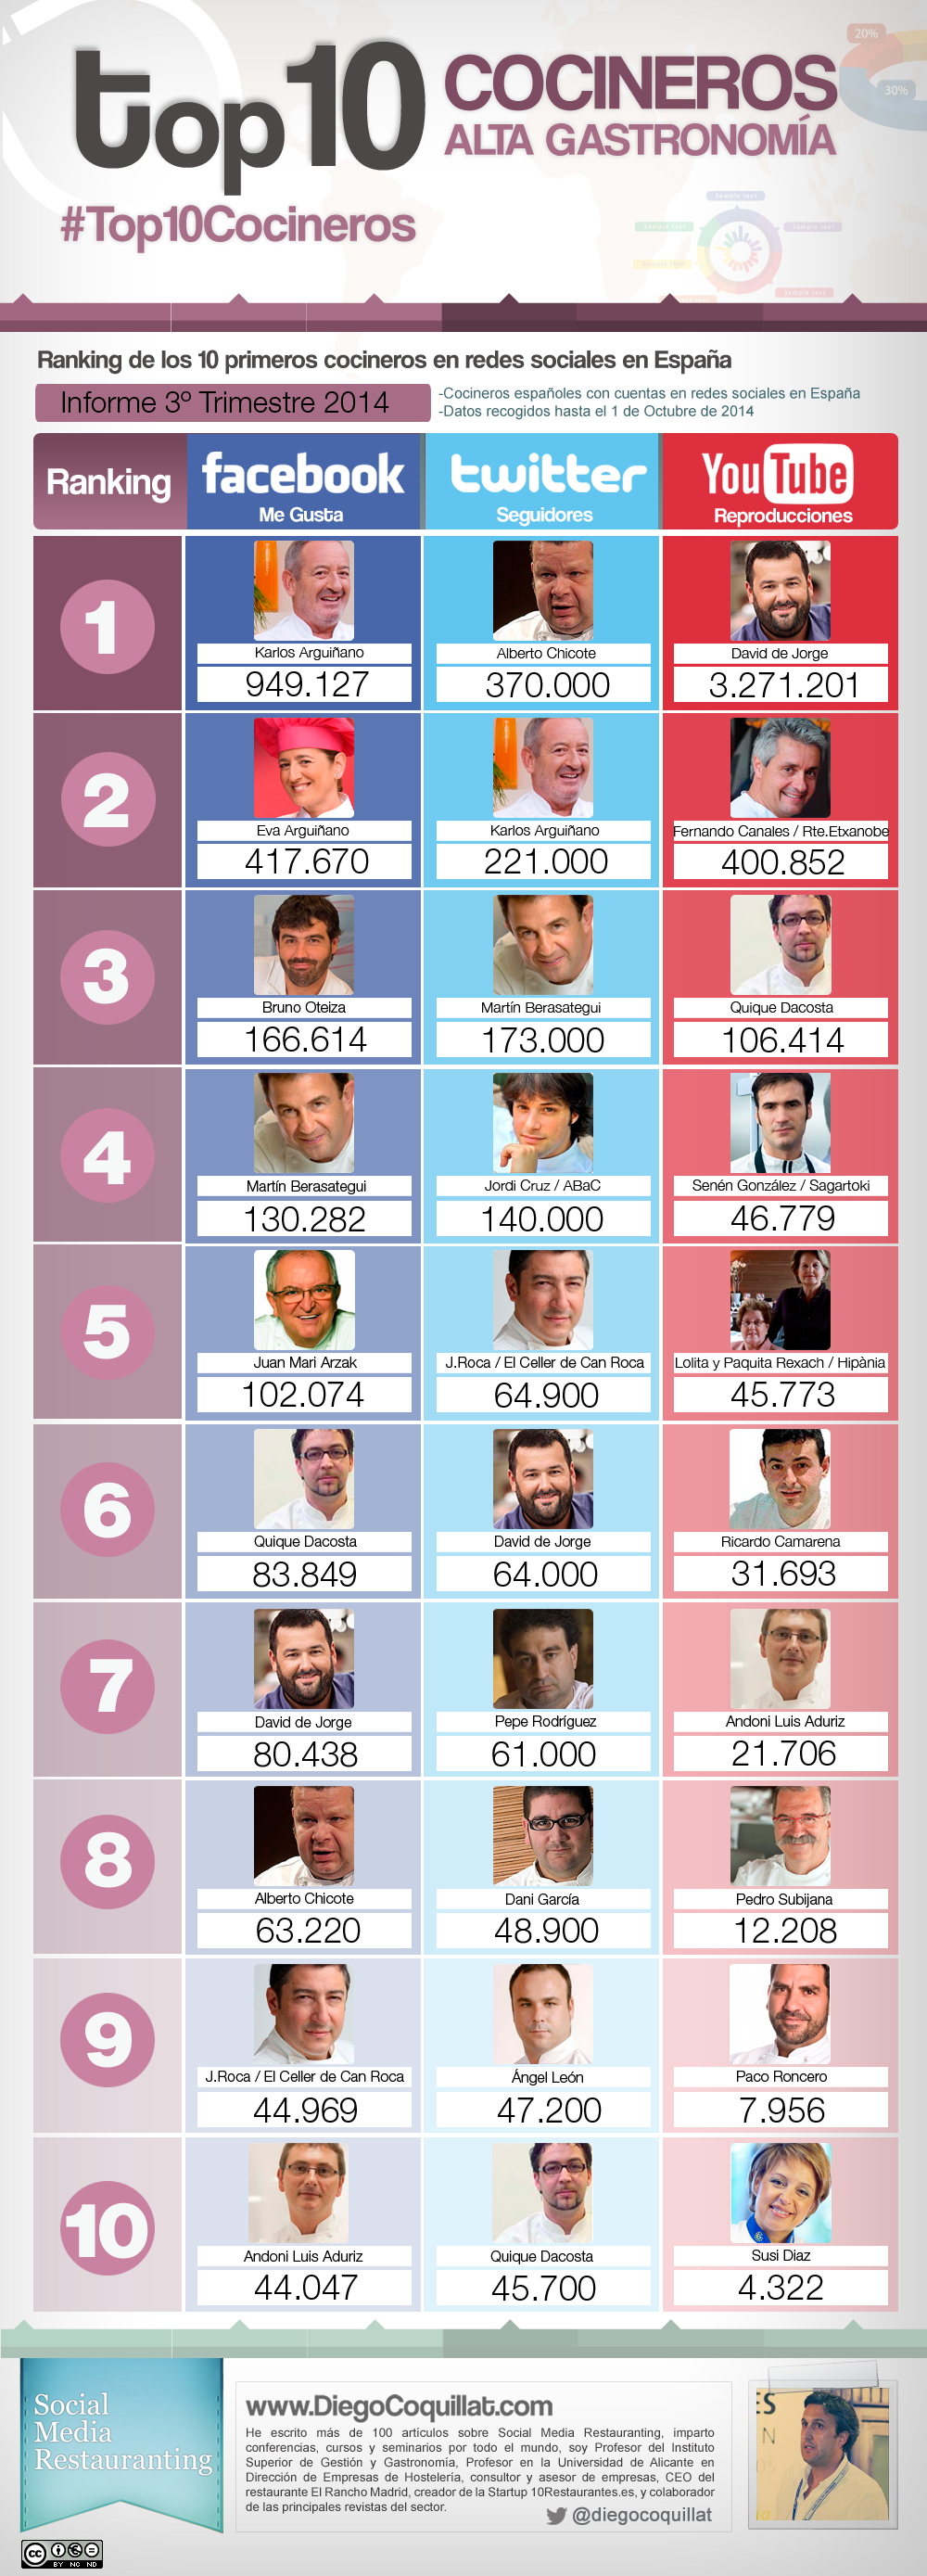 Best chefs in Spain on social networks in the third quarter 2014